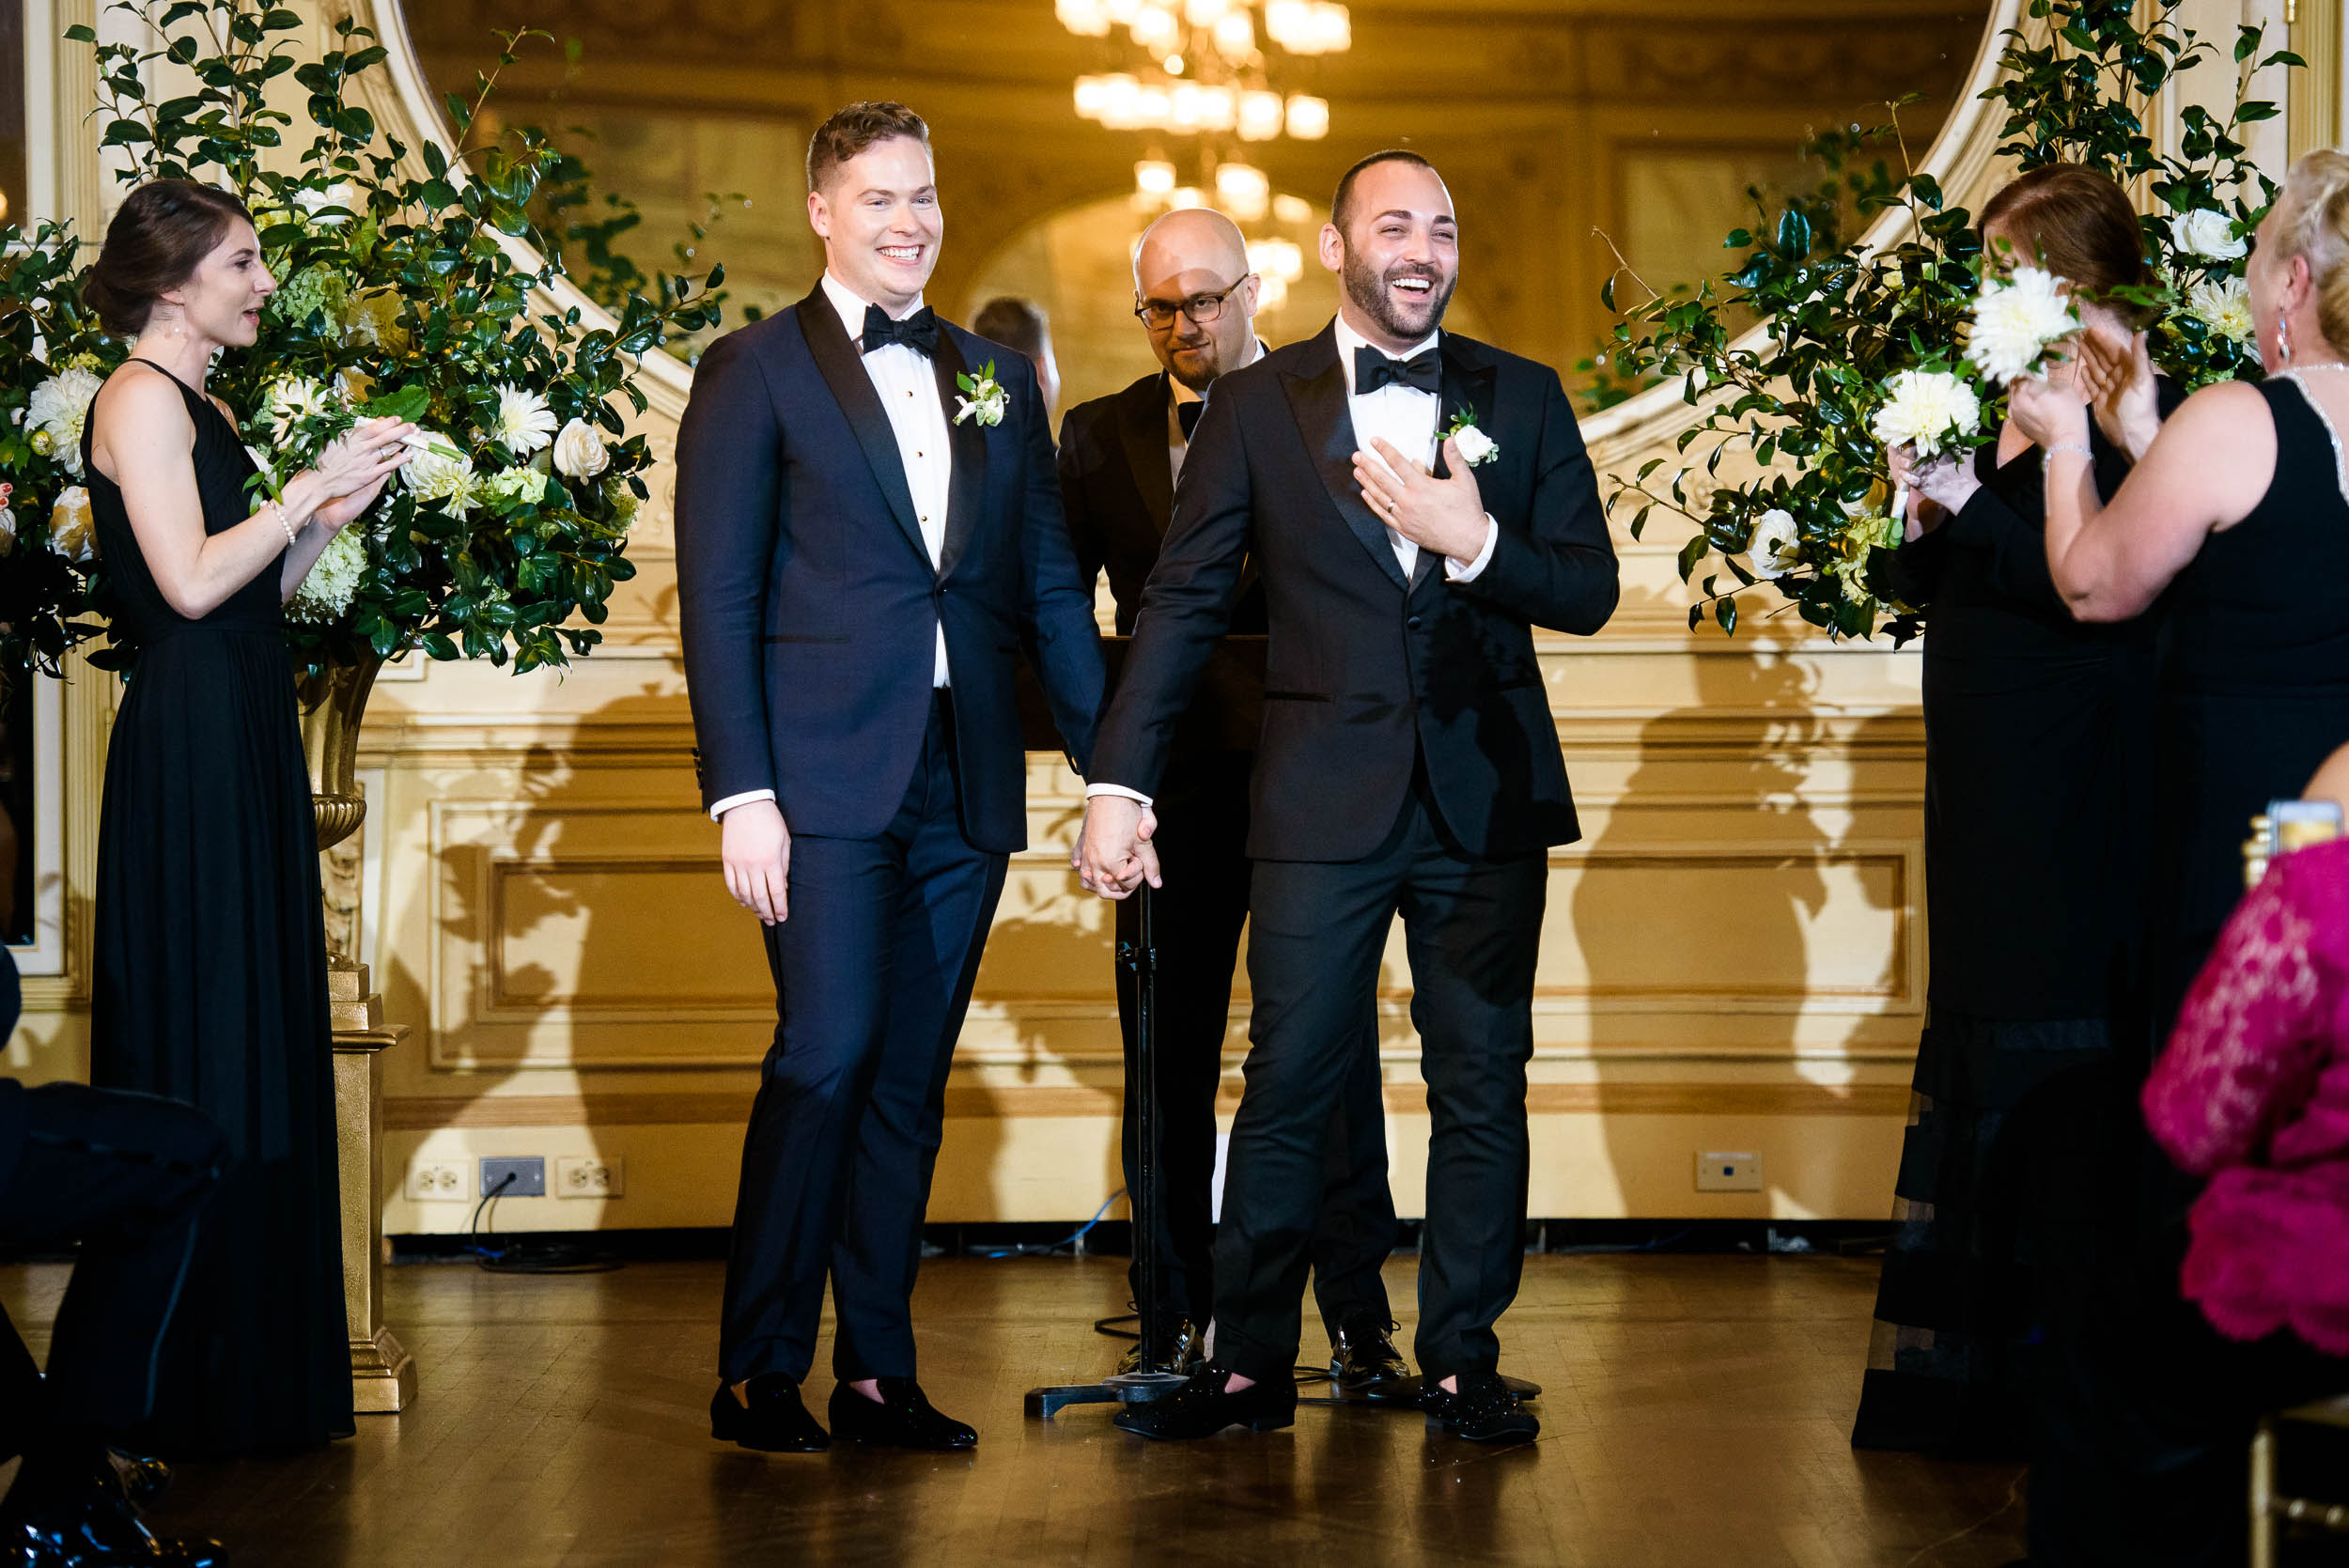 Same-sex wedding ceremony for luxurious fall wedding at the Chicago Symphony Center captured by J. Brown Photography. See more wedding ideas at jbrownphotography.com!